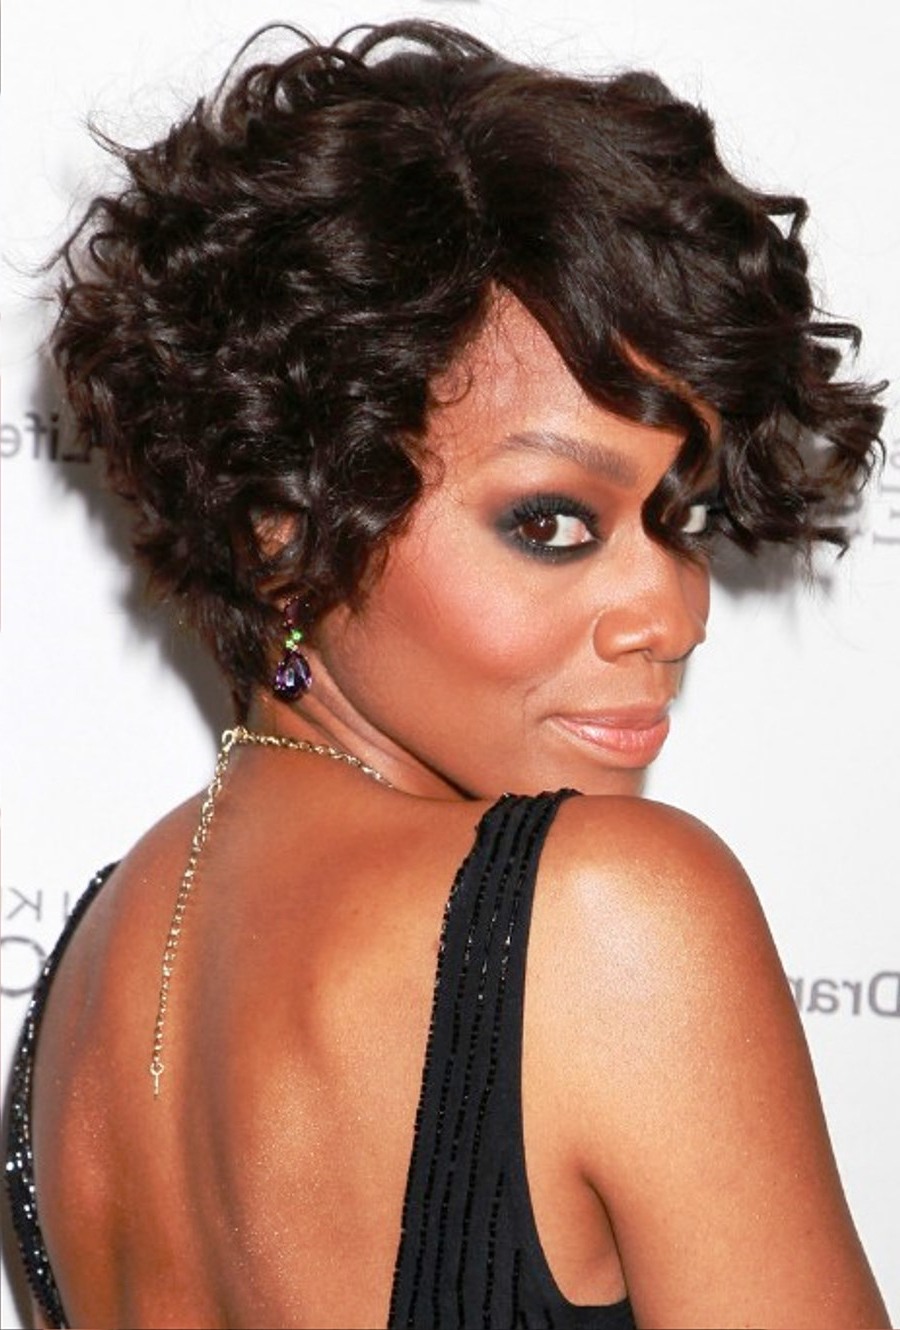 14 Most Beautiful Short Curly Hairstyles And Haircuts For Women Throughout Short Bob For Curly Hairstyles (View 3 of 20)